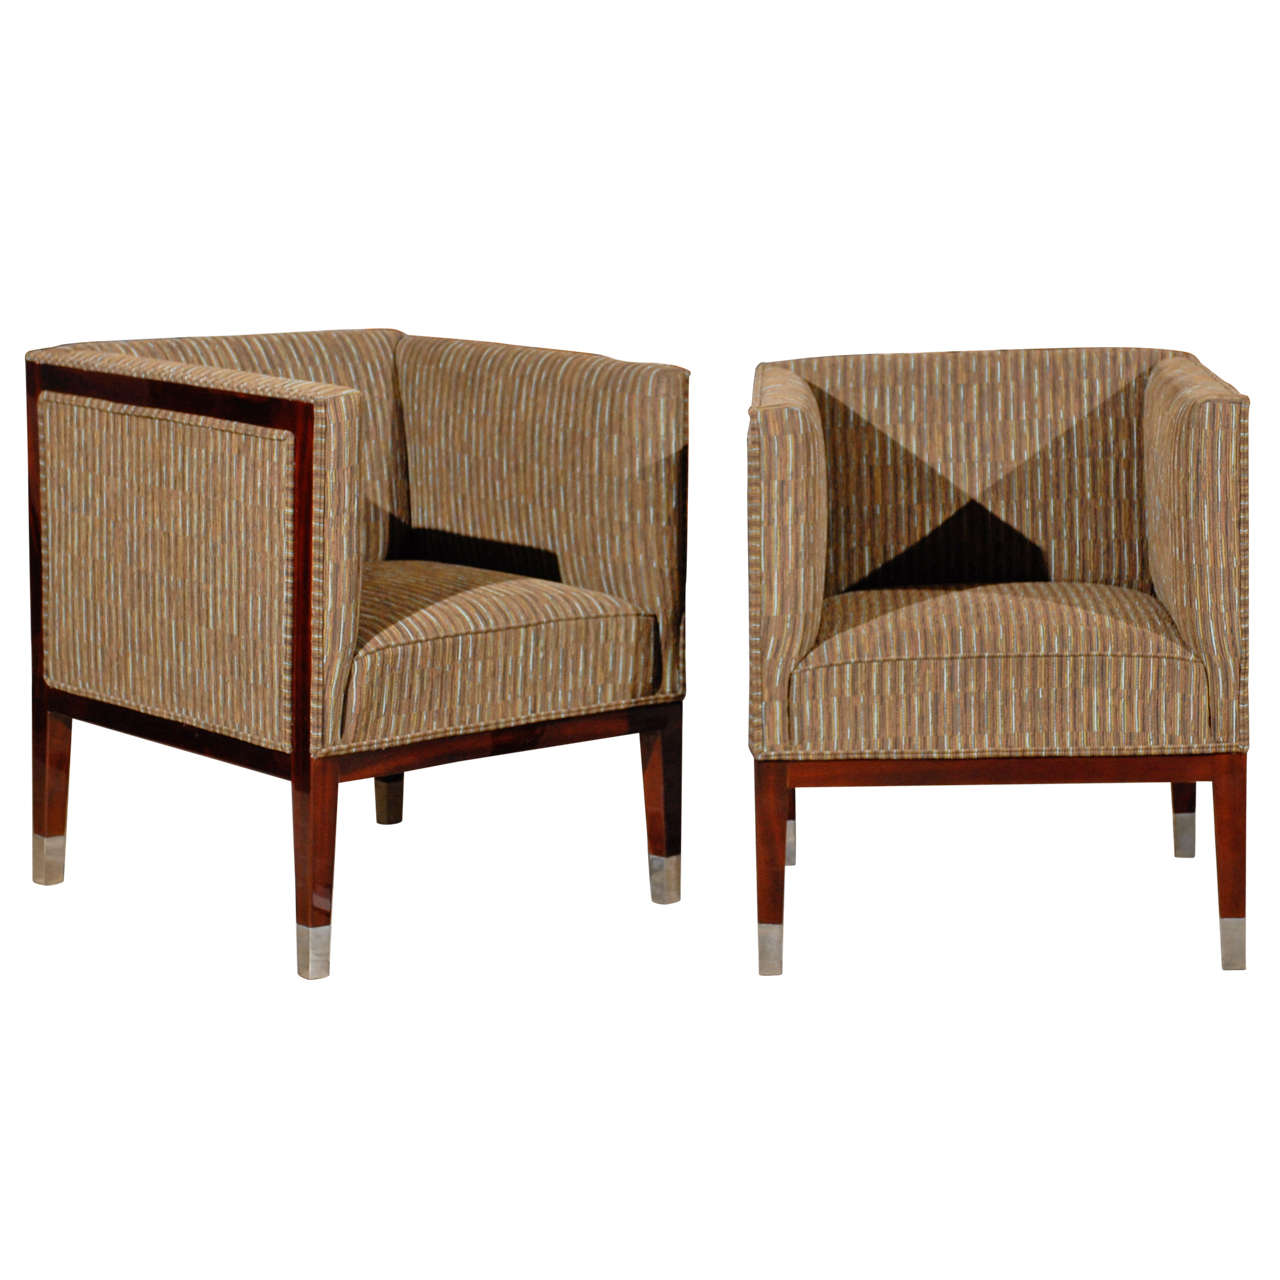 Art deco period furniture Timeline Pair Of Art Deco Period Upholstered Club Chairs With Wraparound Backs For Sale 1stdibs Pair Of Art Deco Period Upholstered Club Chairs With Wraparound